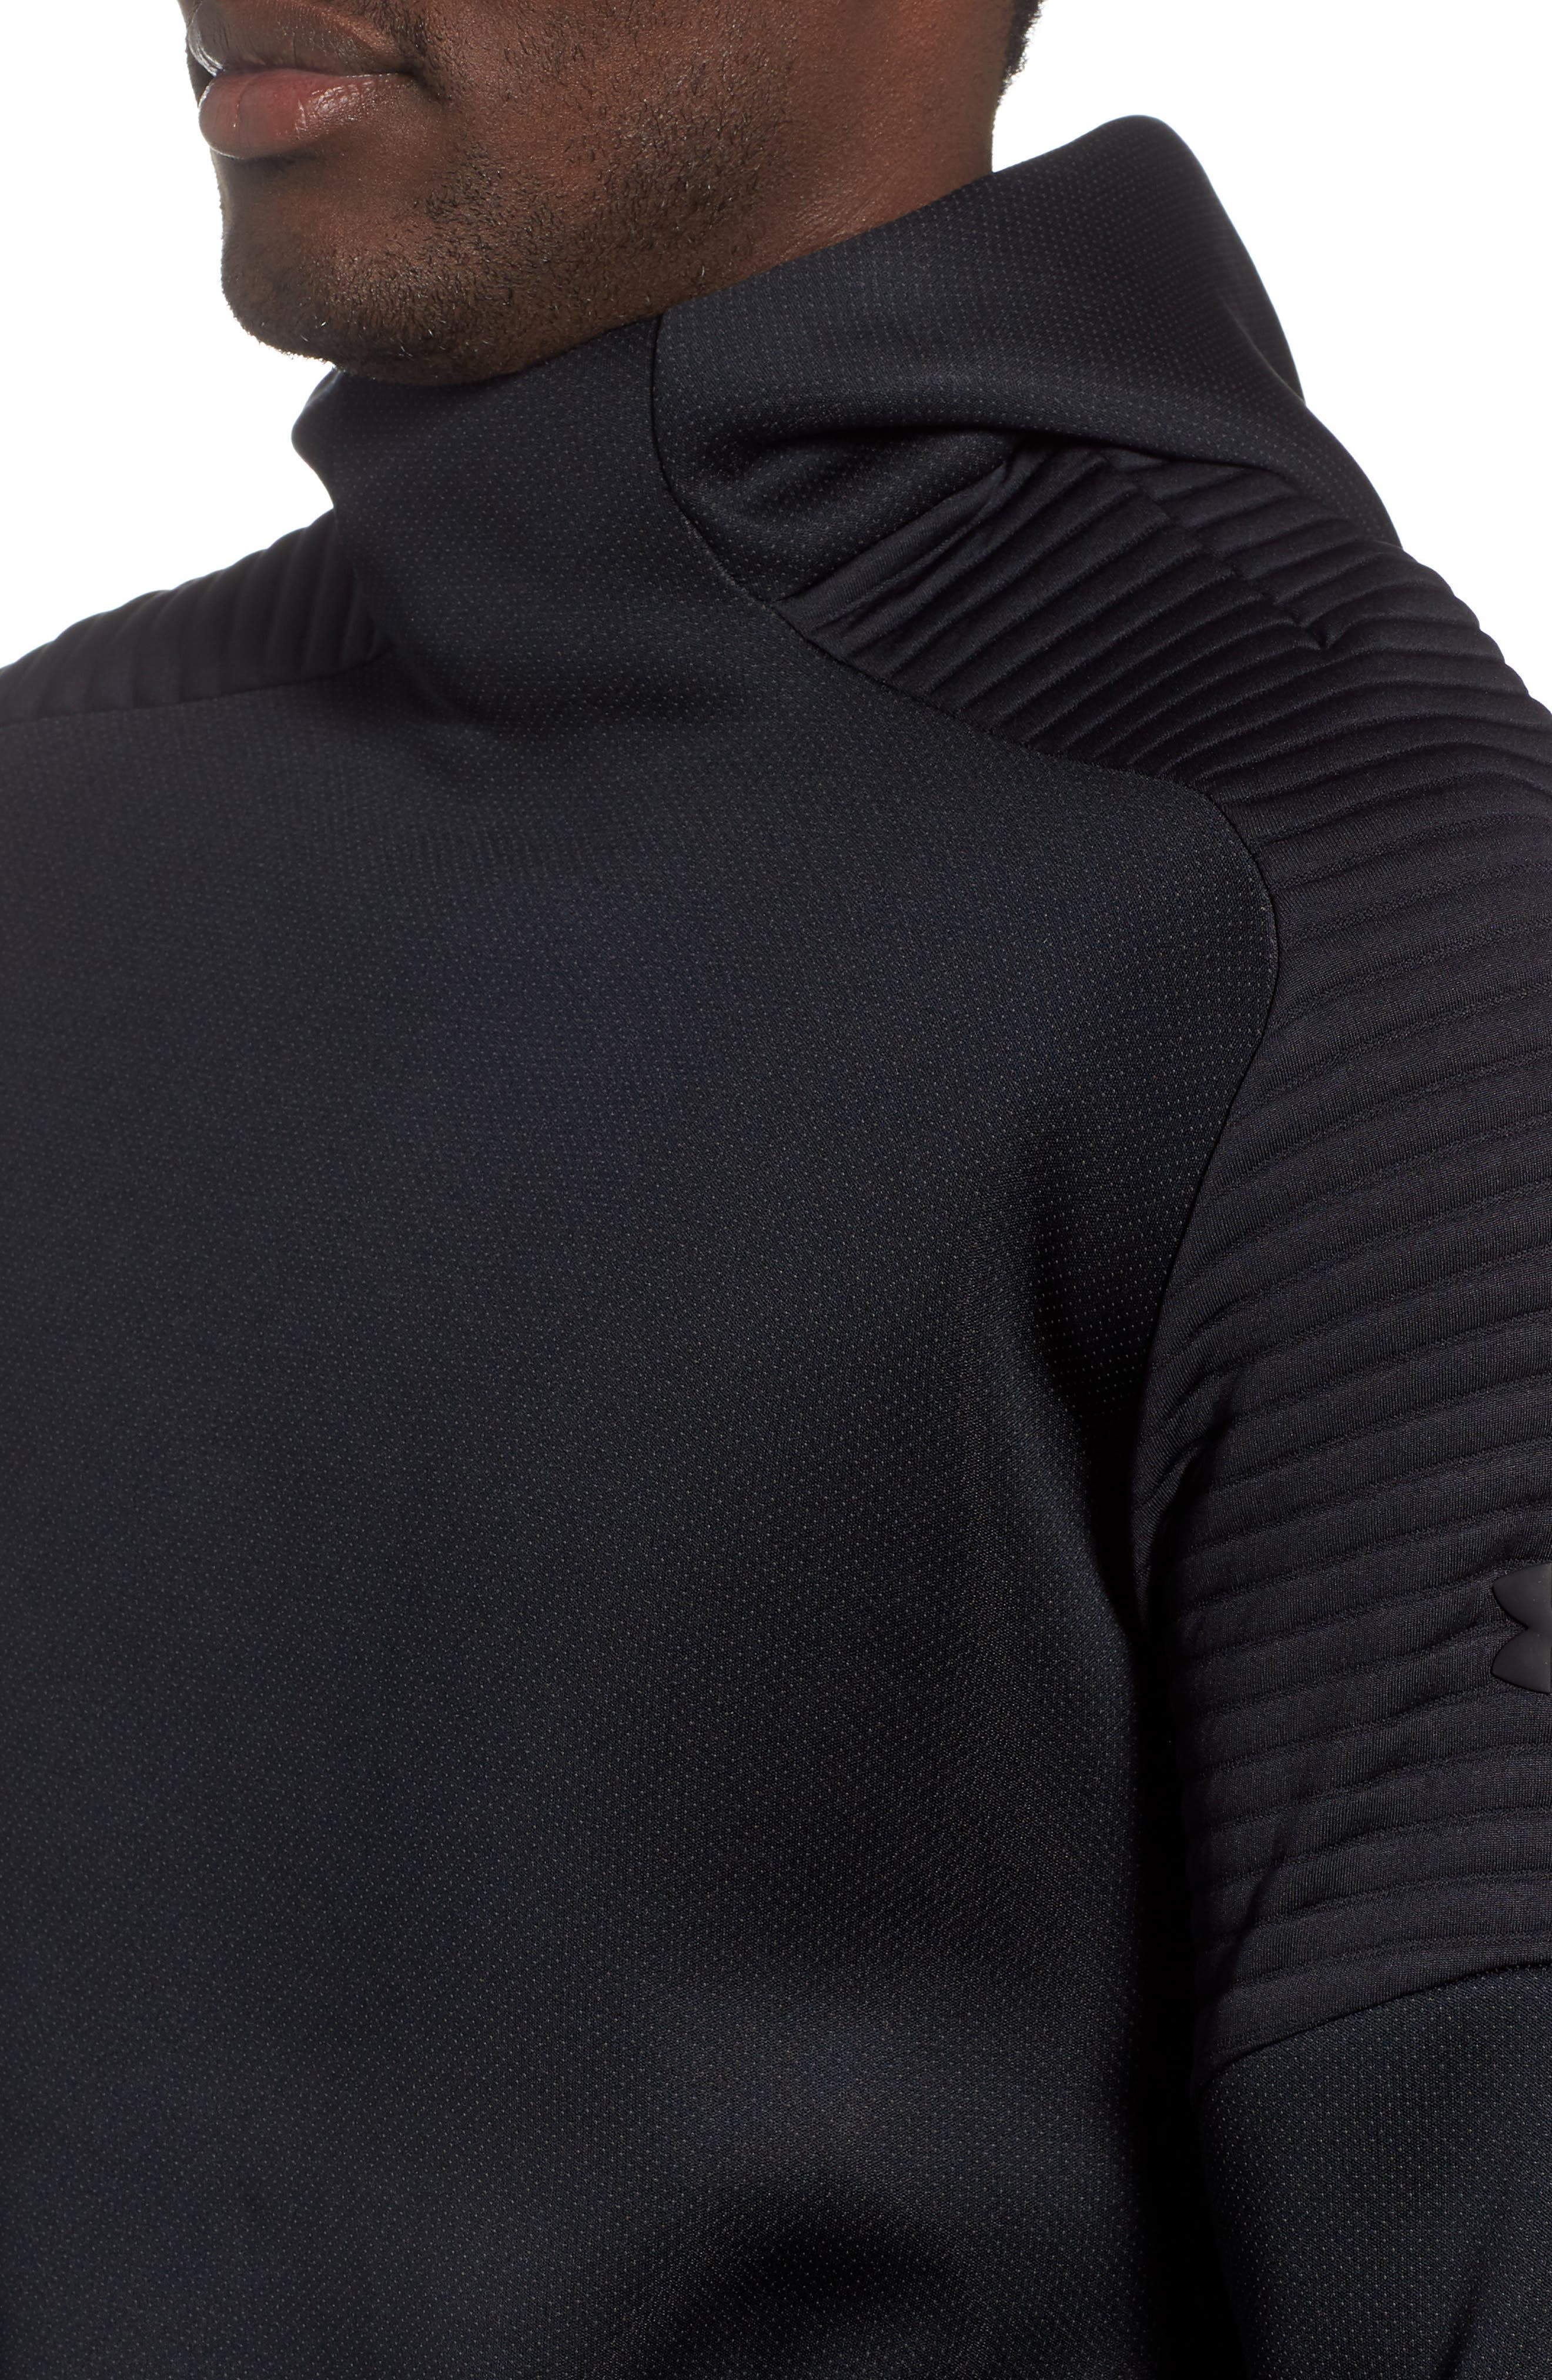 Unstoppable /MOVE Hoodie,                             Alternate thumbnail 4, color,                             BLACK/ CHARCOAL/ BLACK